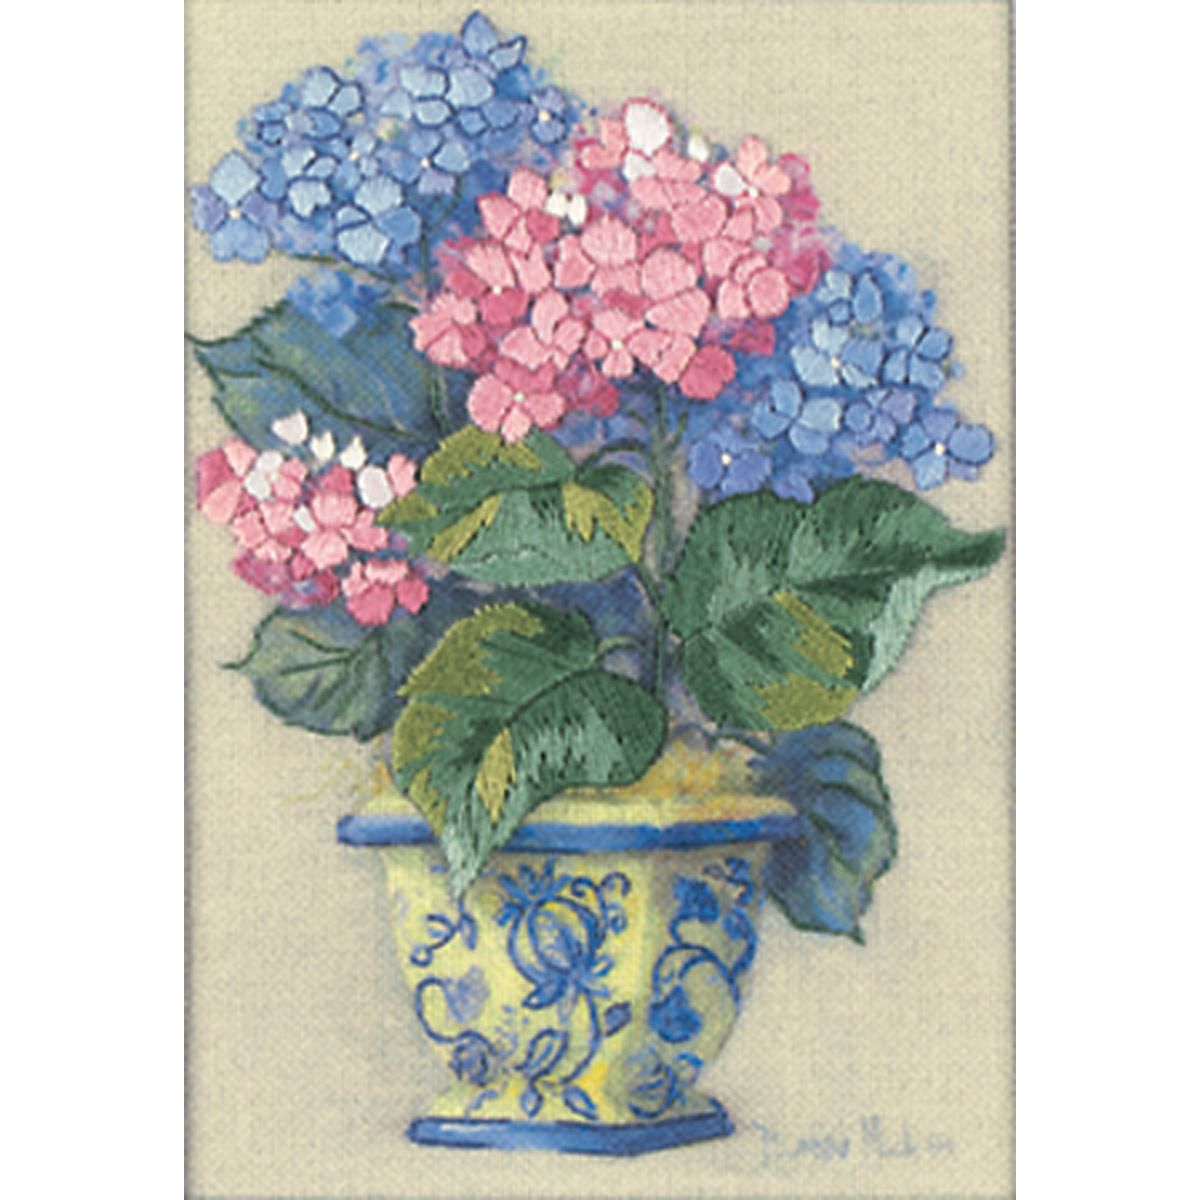 Jiffy Colorful Hydrangea Mini Crewel Kit-5X7 Stitched In Thr